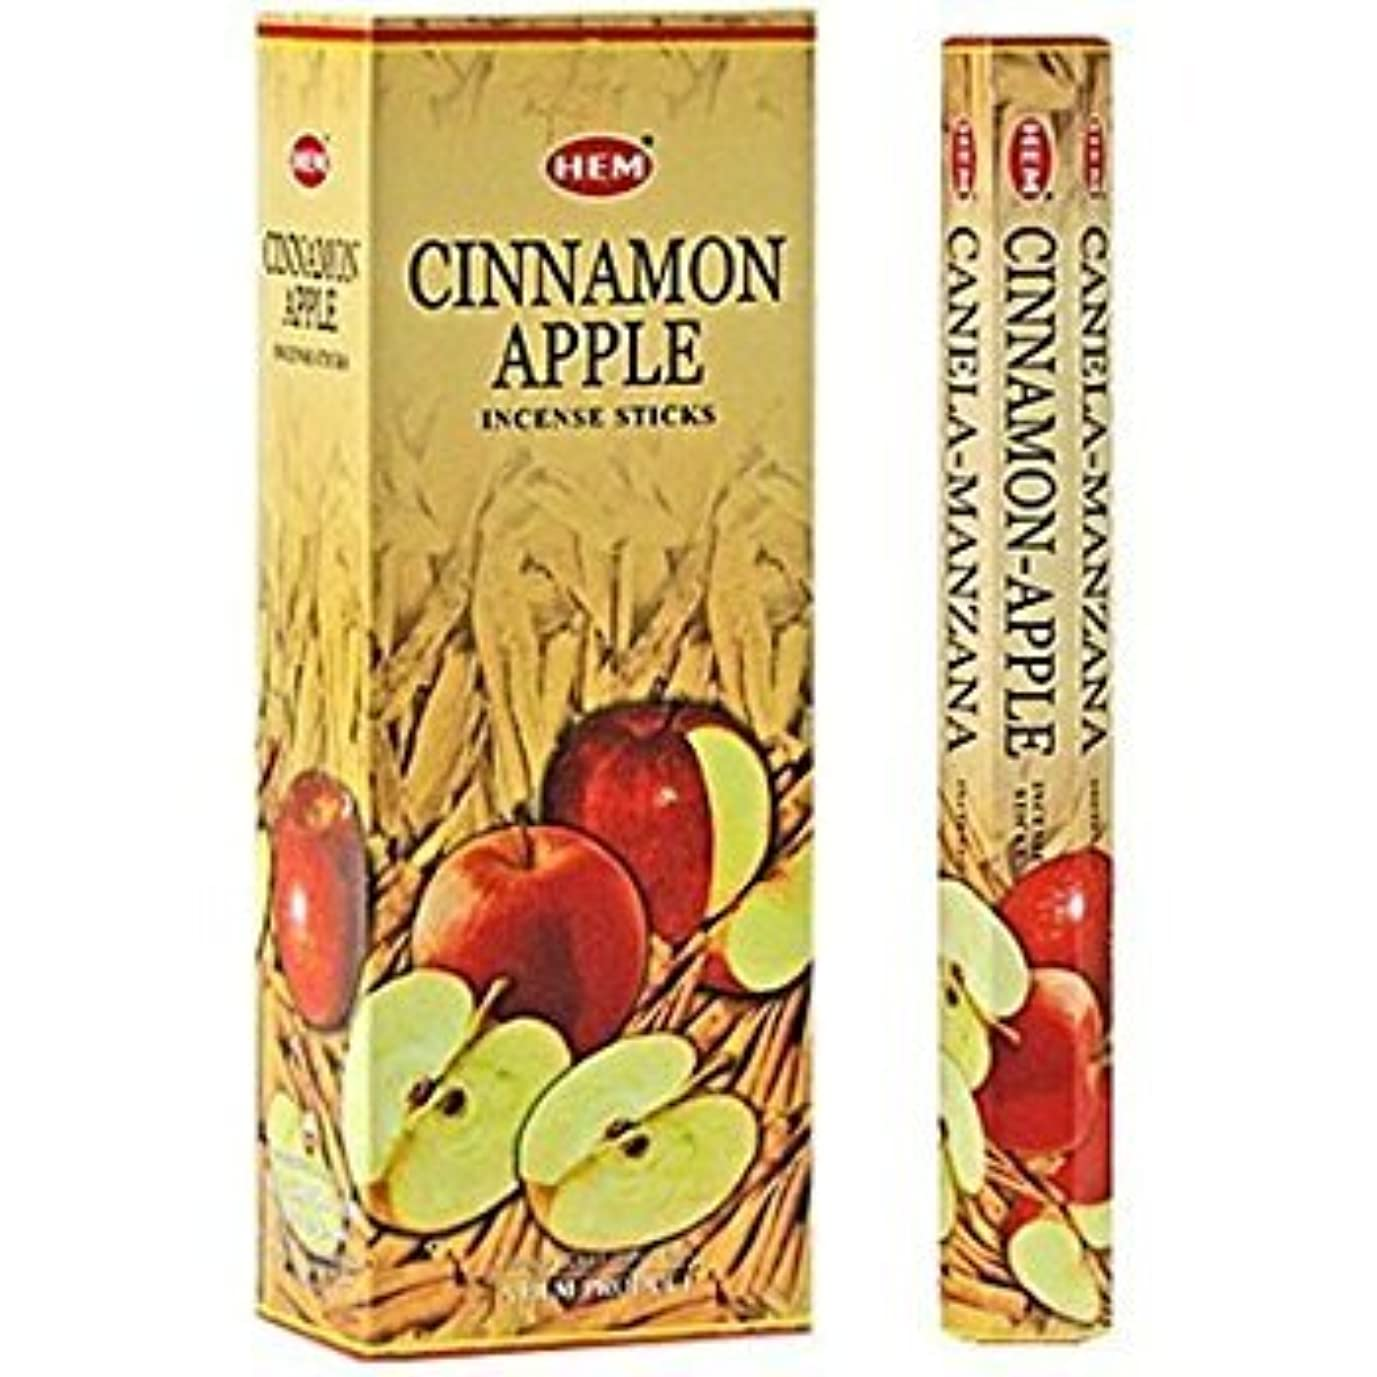 何よりも侮辱放散するCinnamon Apple - Box of Six 20 Stick Tubes - HEM Incense